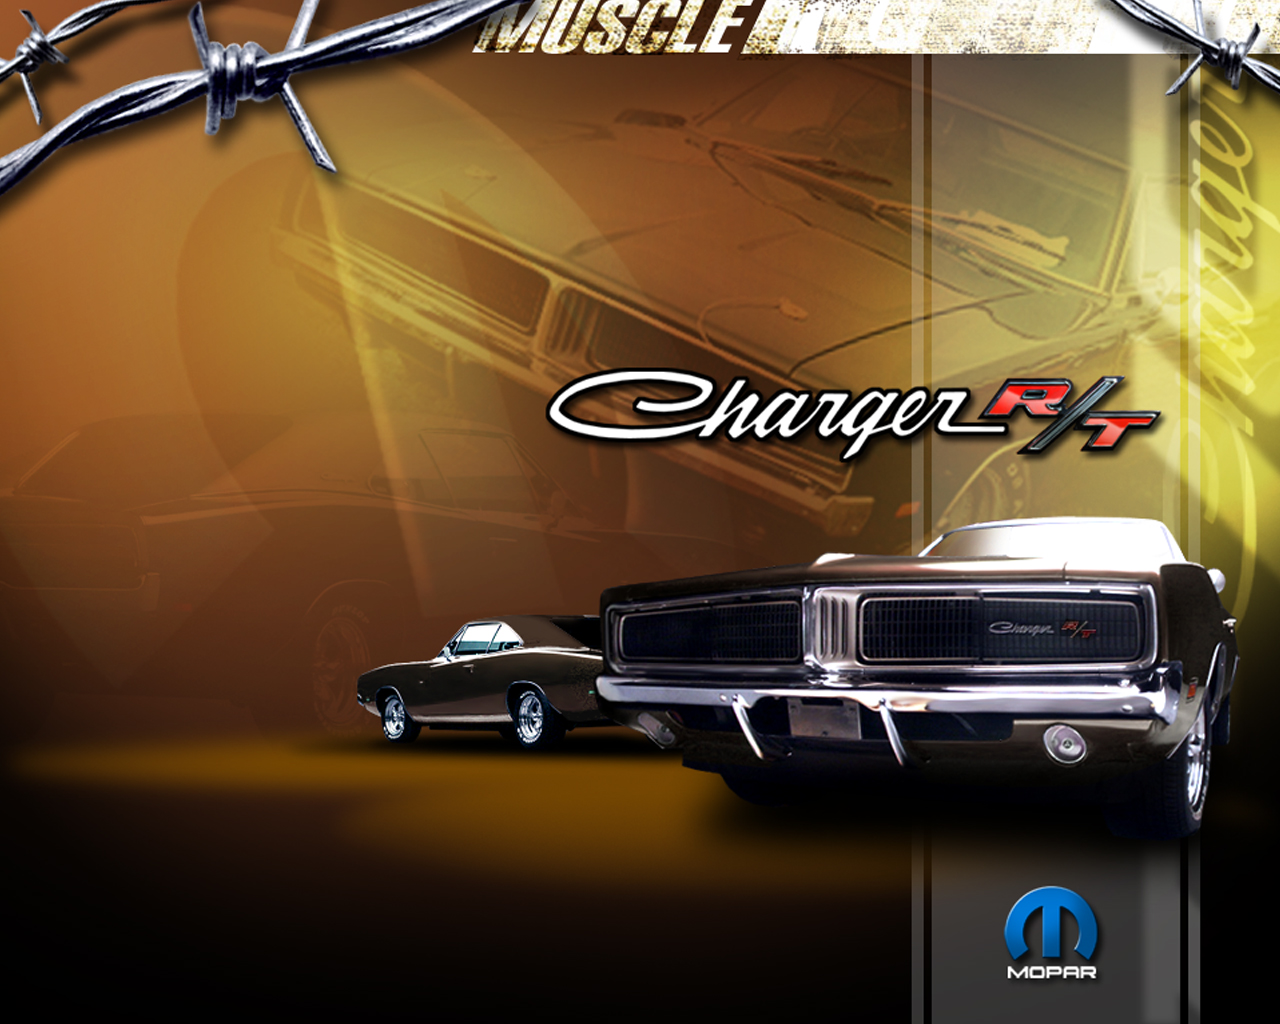 Dodge Charger RT Wallpaper - WallpaperSafari